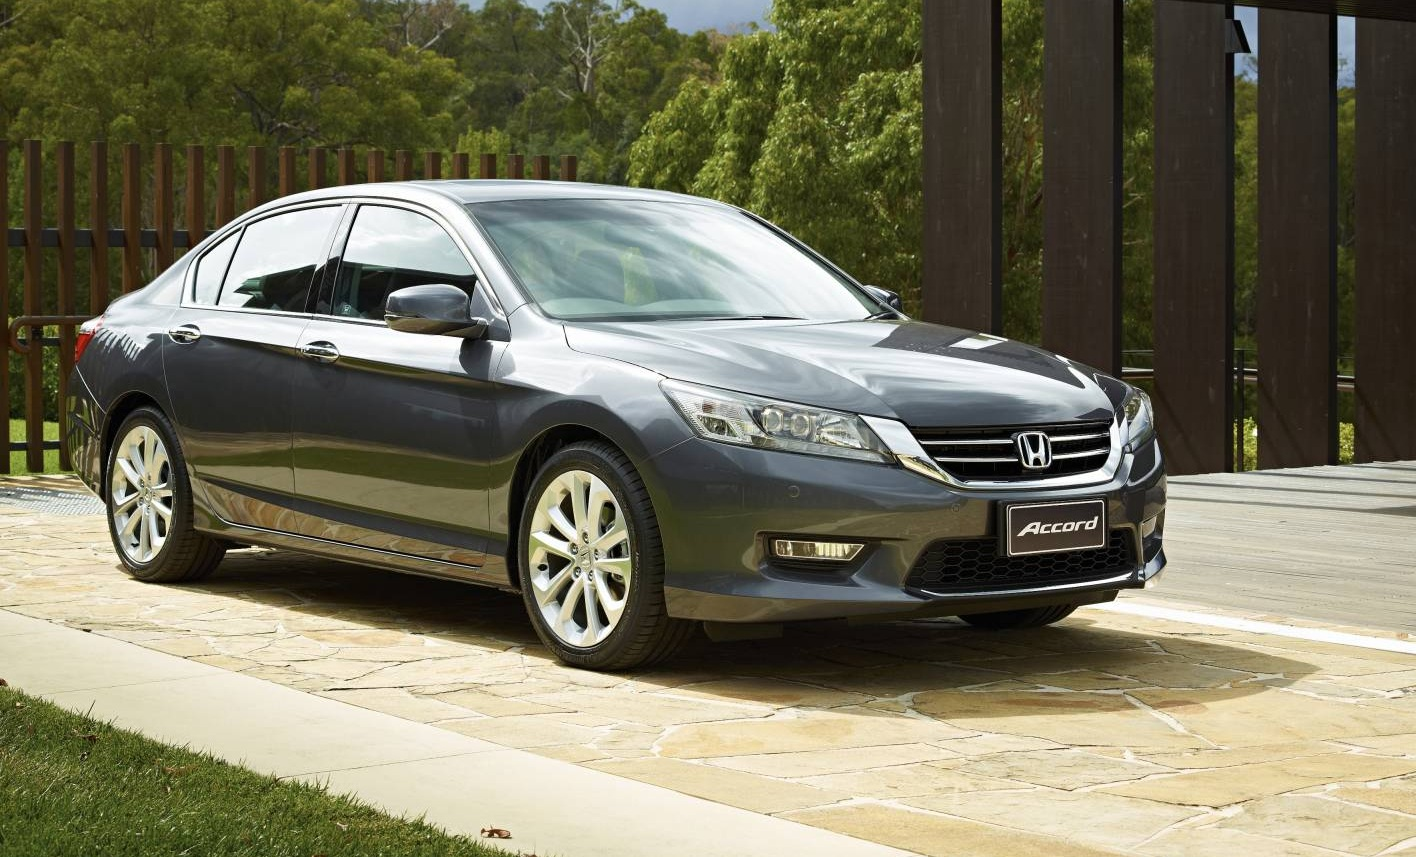 Honda Accord Review 2013 Honda Accord